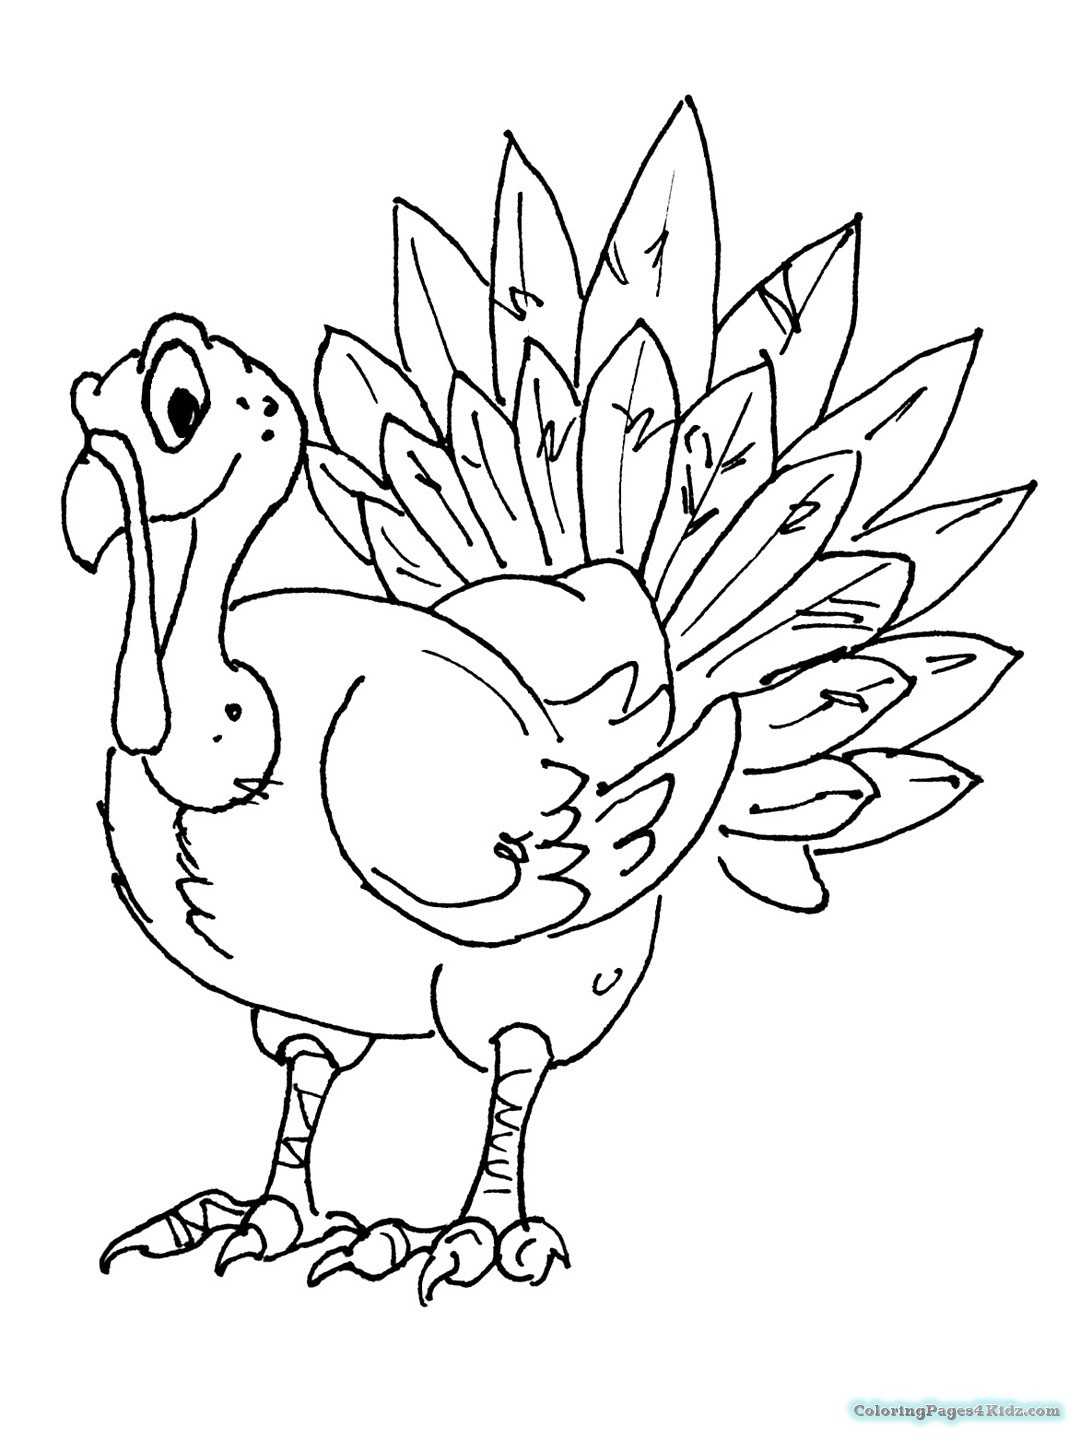 coloring printable turkey thanksgiving coloring pages make a turkey coloring pages printable turkey coloring